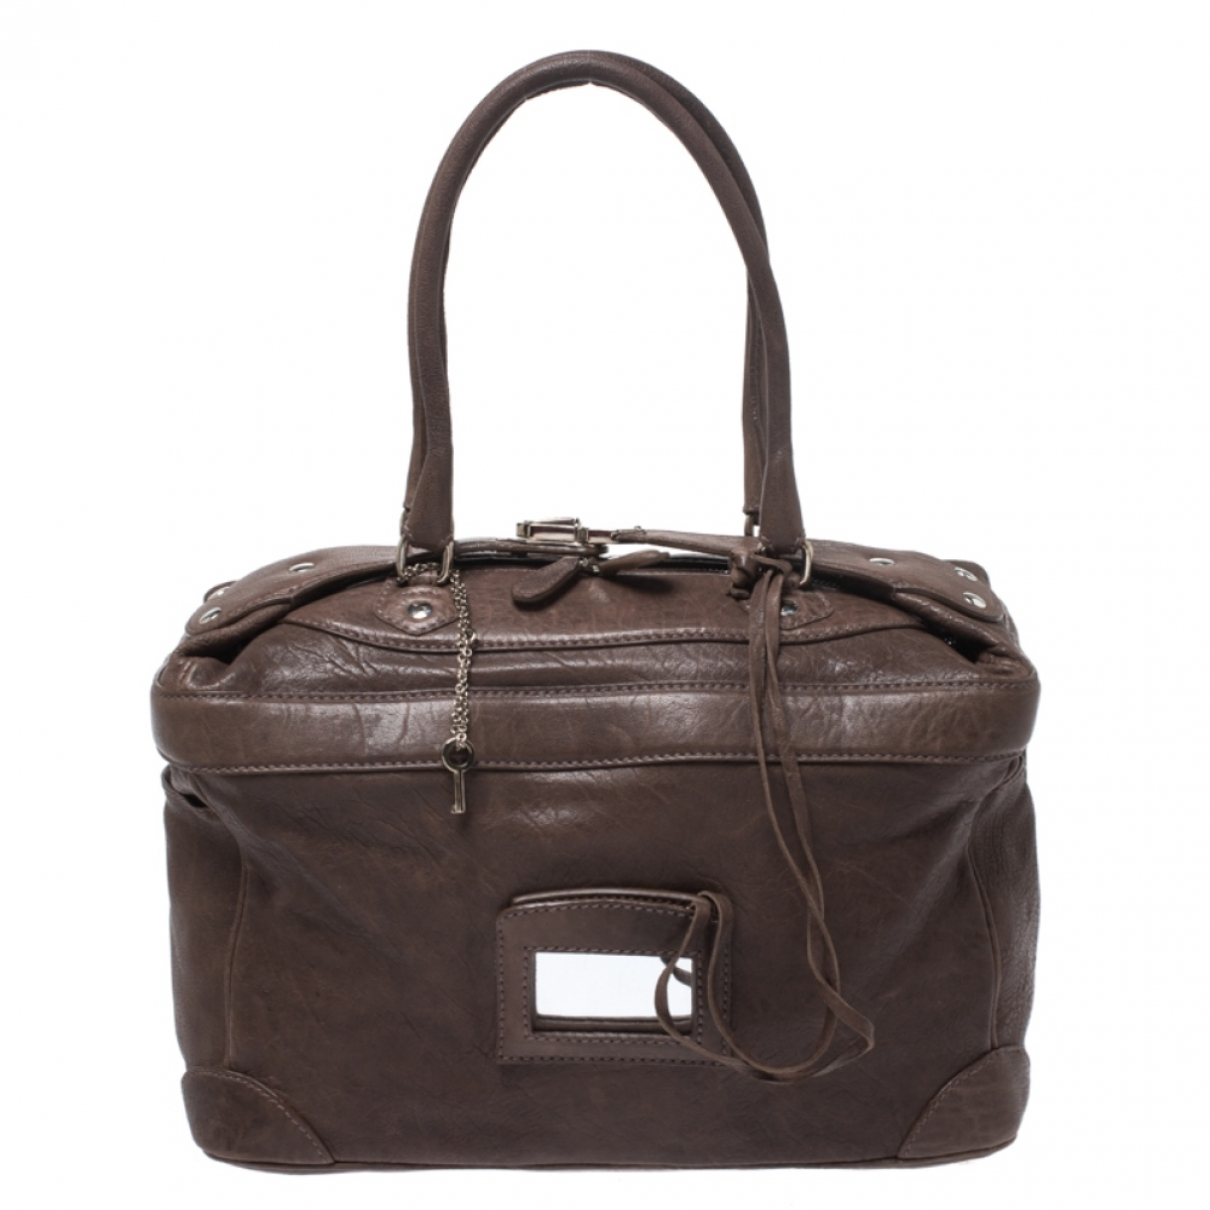 Balenciaga \N Brown Leather handbag for Women \N